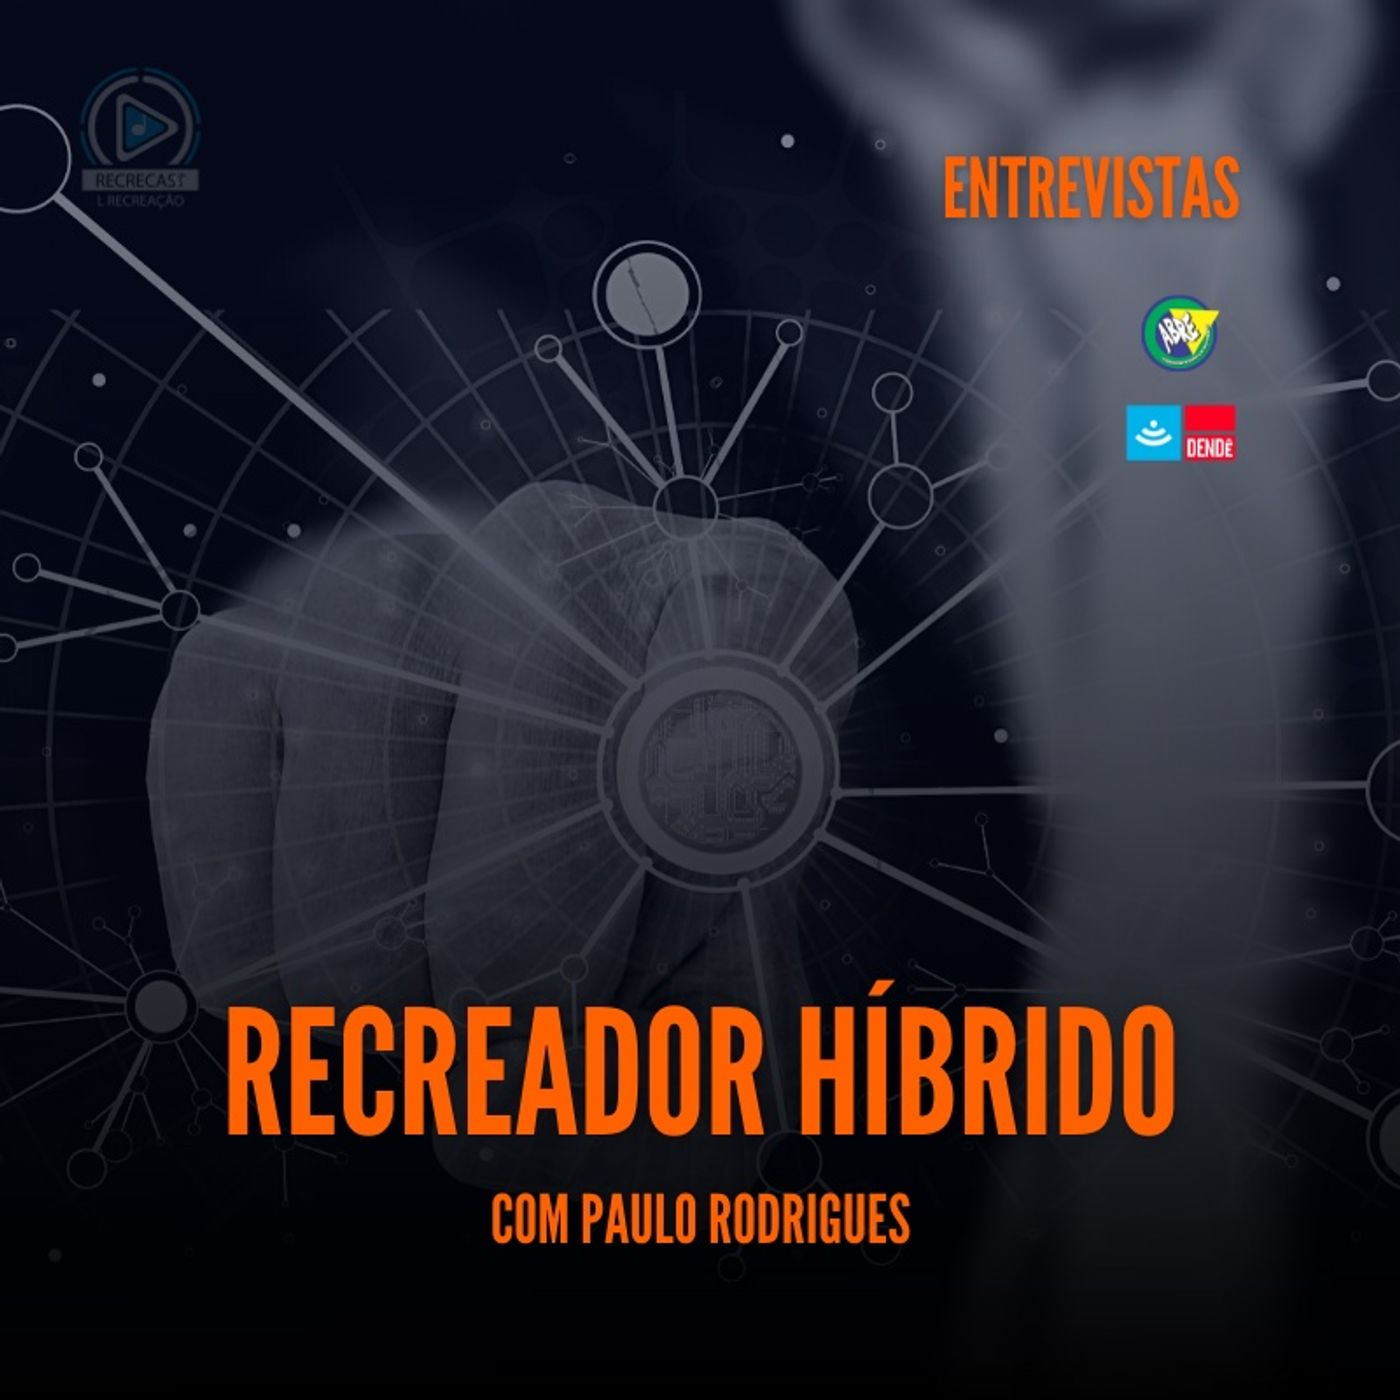 Recreador Híbrido